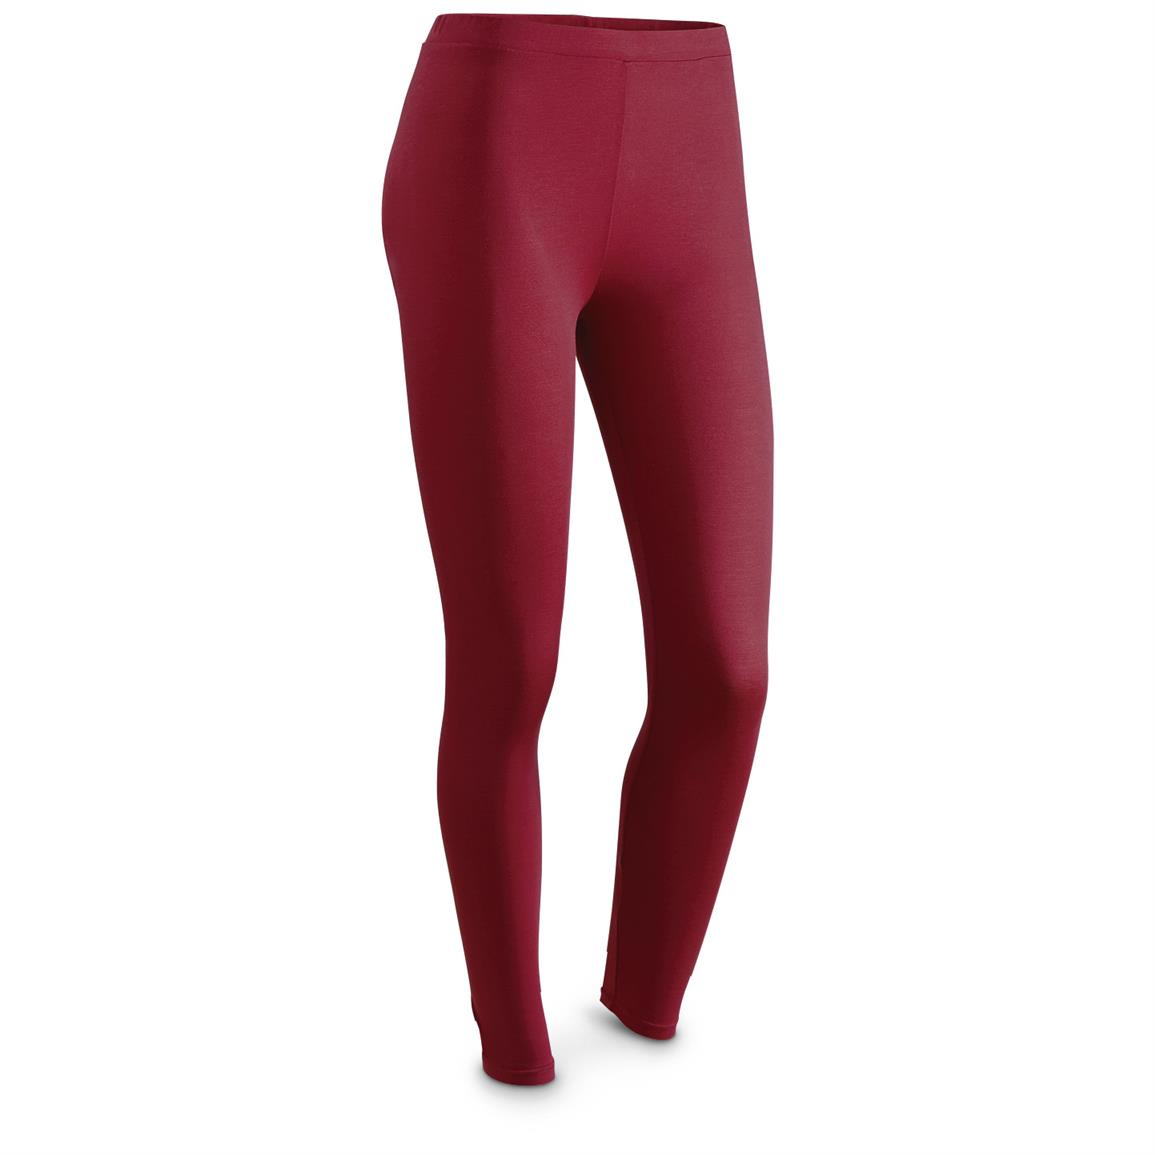 Weatherproof 32 Degrees HEAT Women's Base Layer Bottoms, Garnet Red